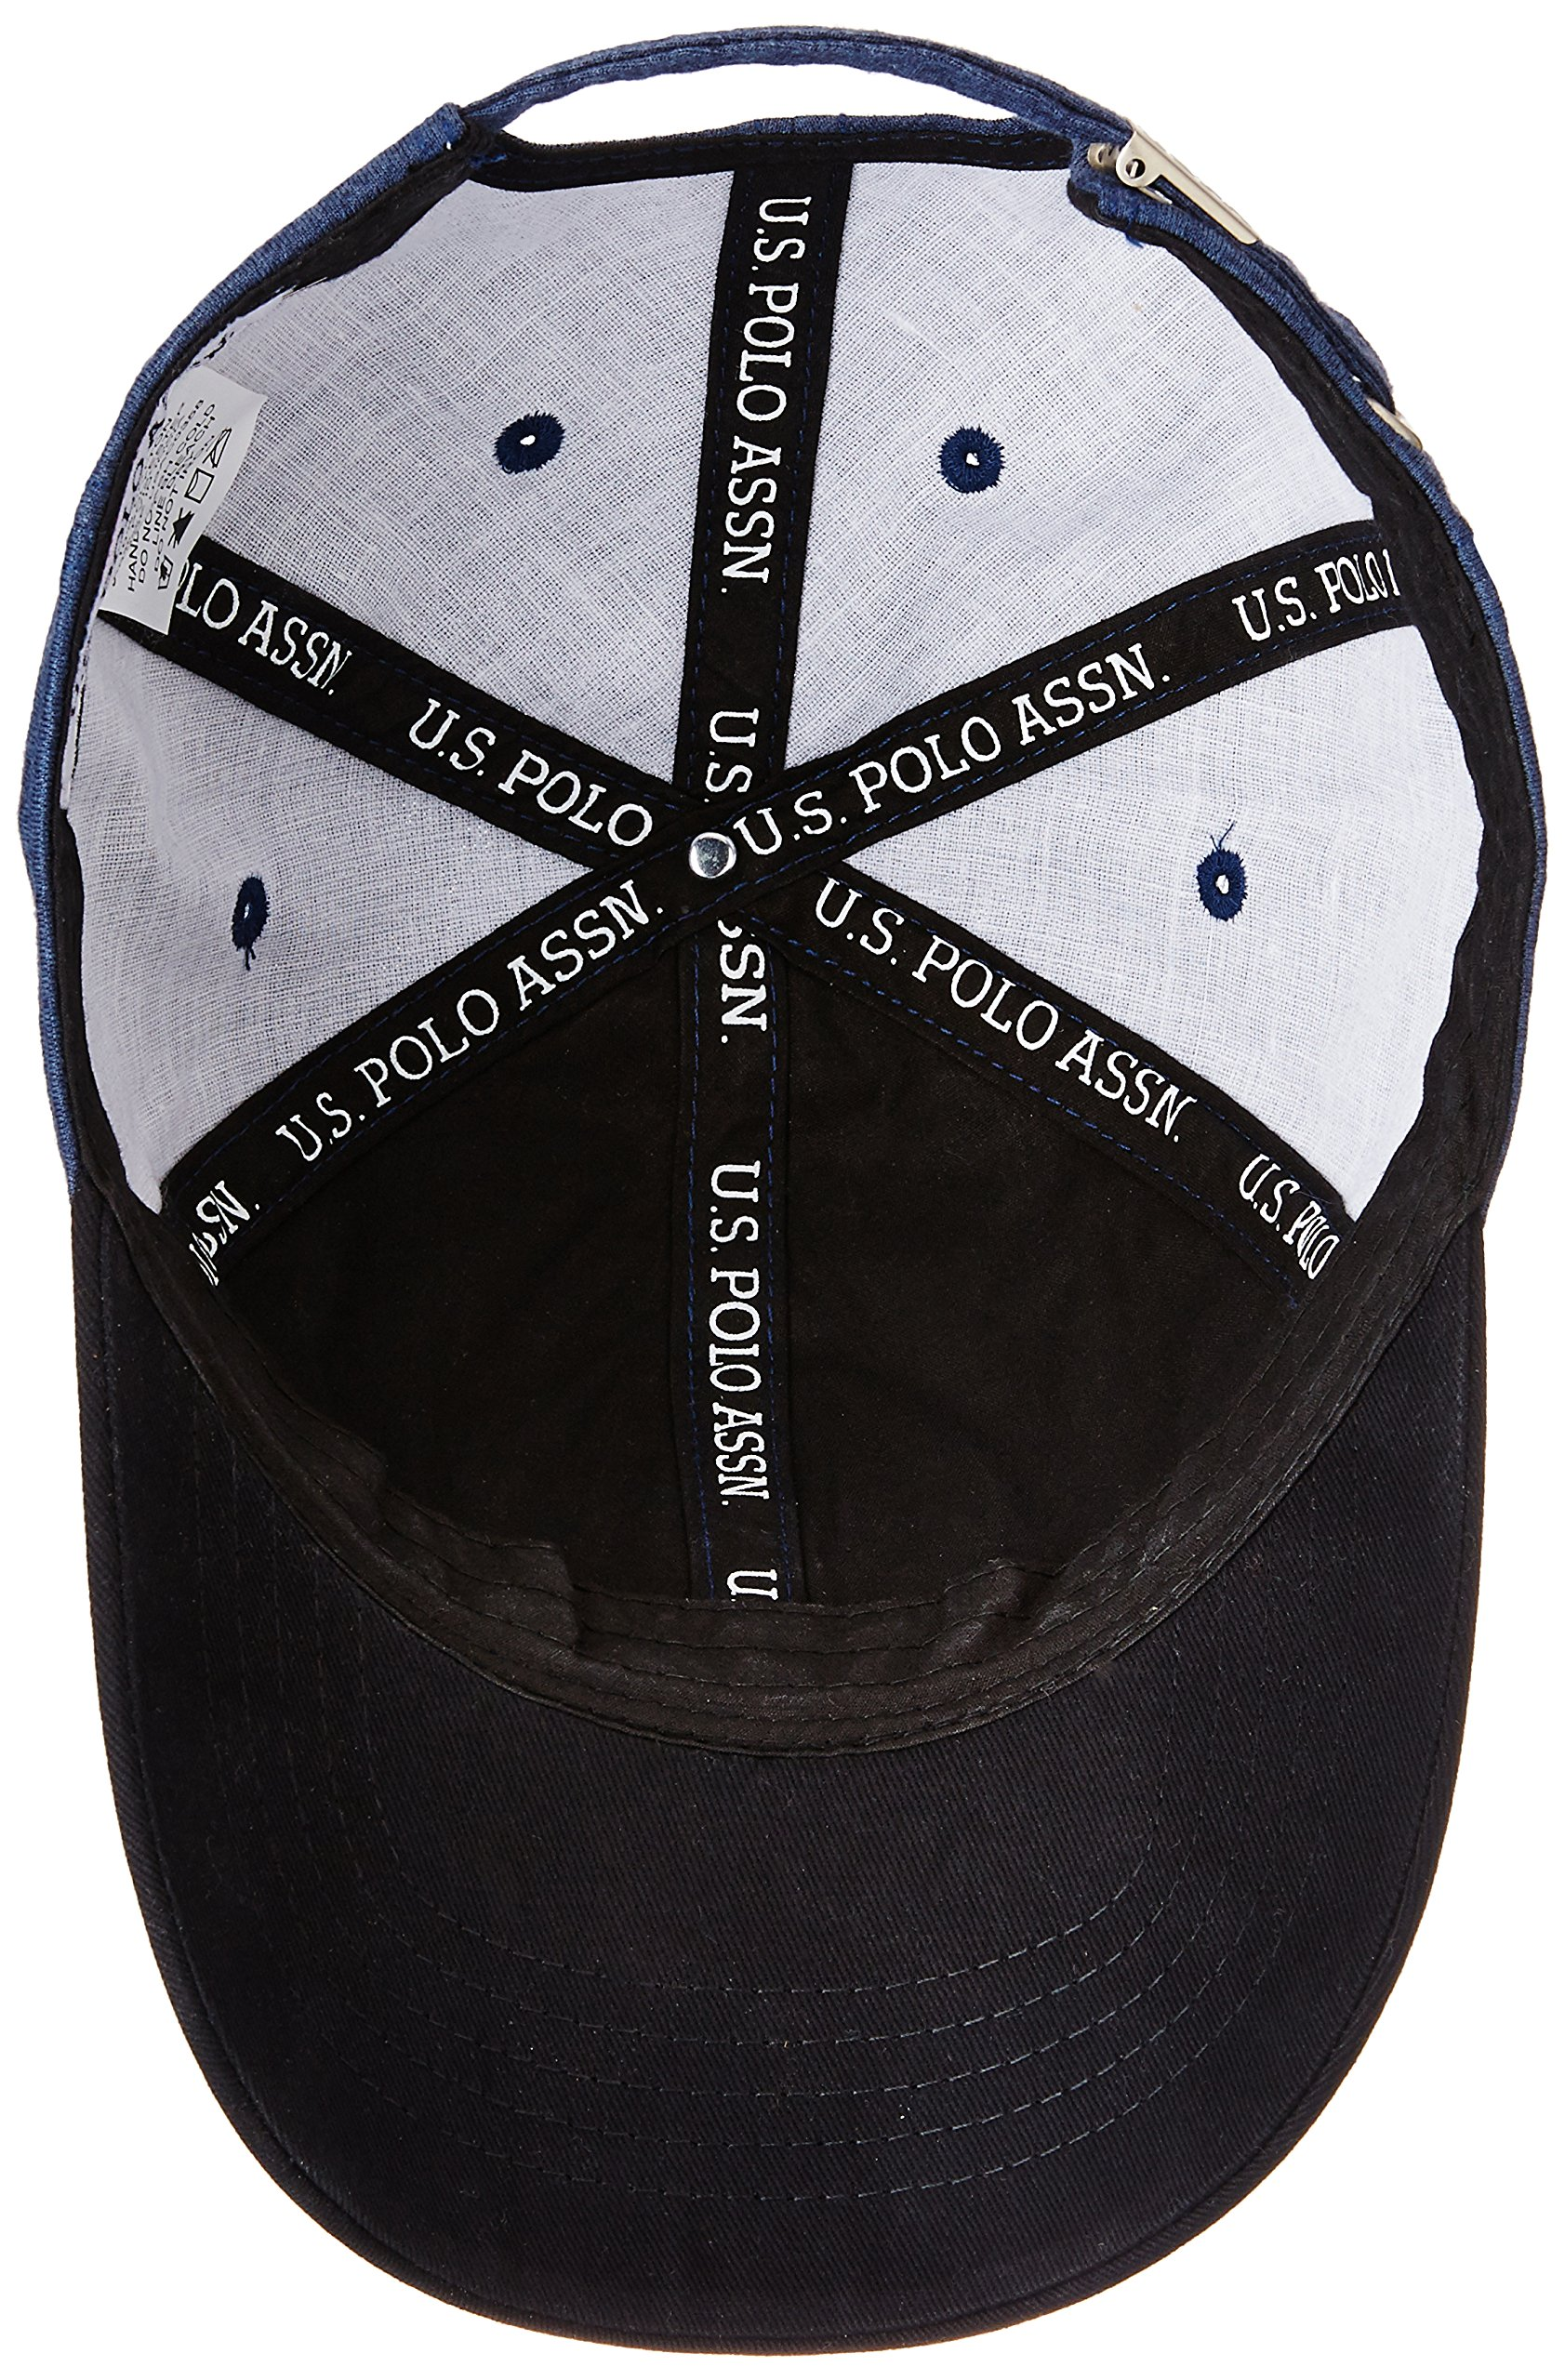 ba222171d47 US Polo Association Men s Baseball Cap – Online Shopping Site in ...